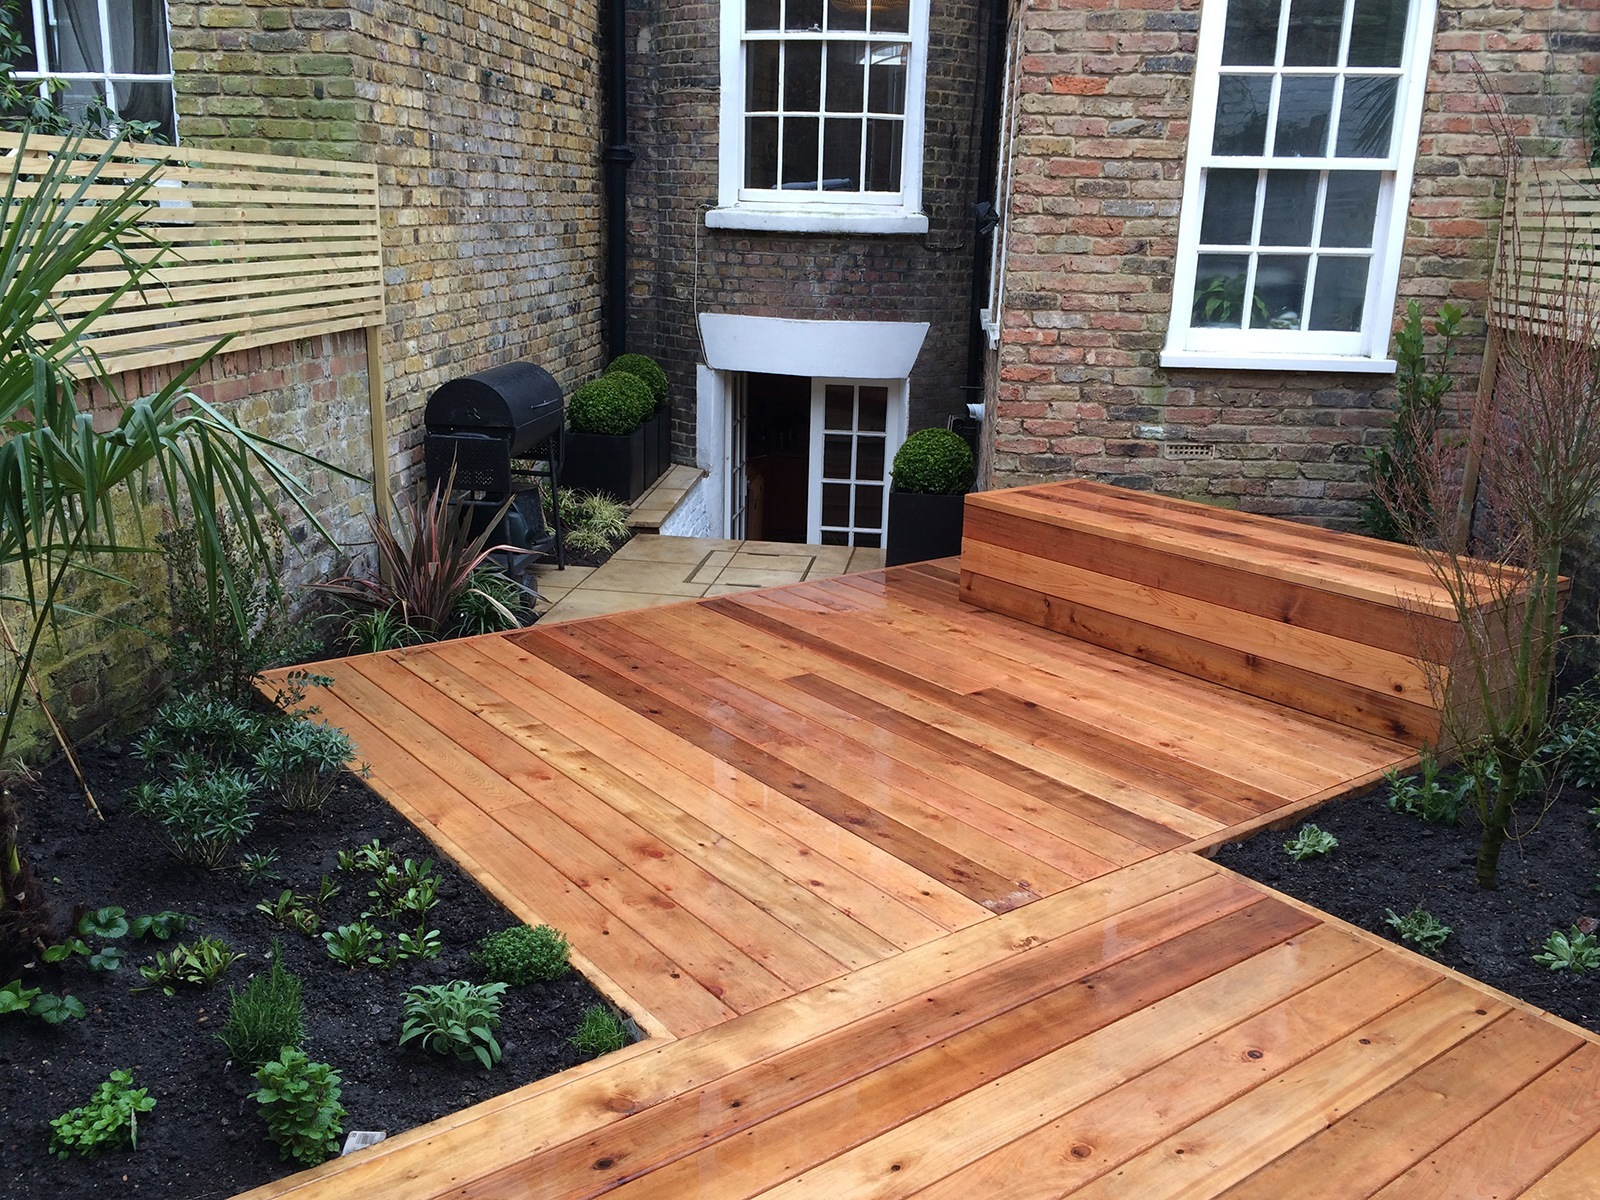 Decking set at an angle to the boundary walls breaks up this tight square garden and makes it feel bigger.